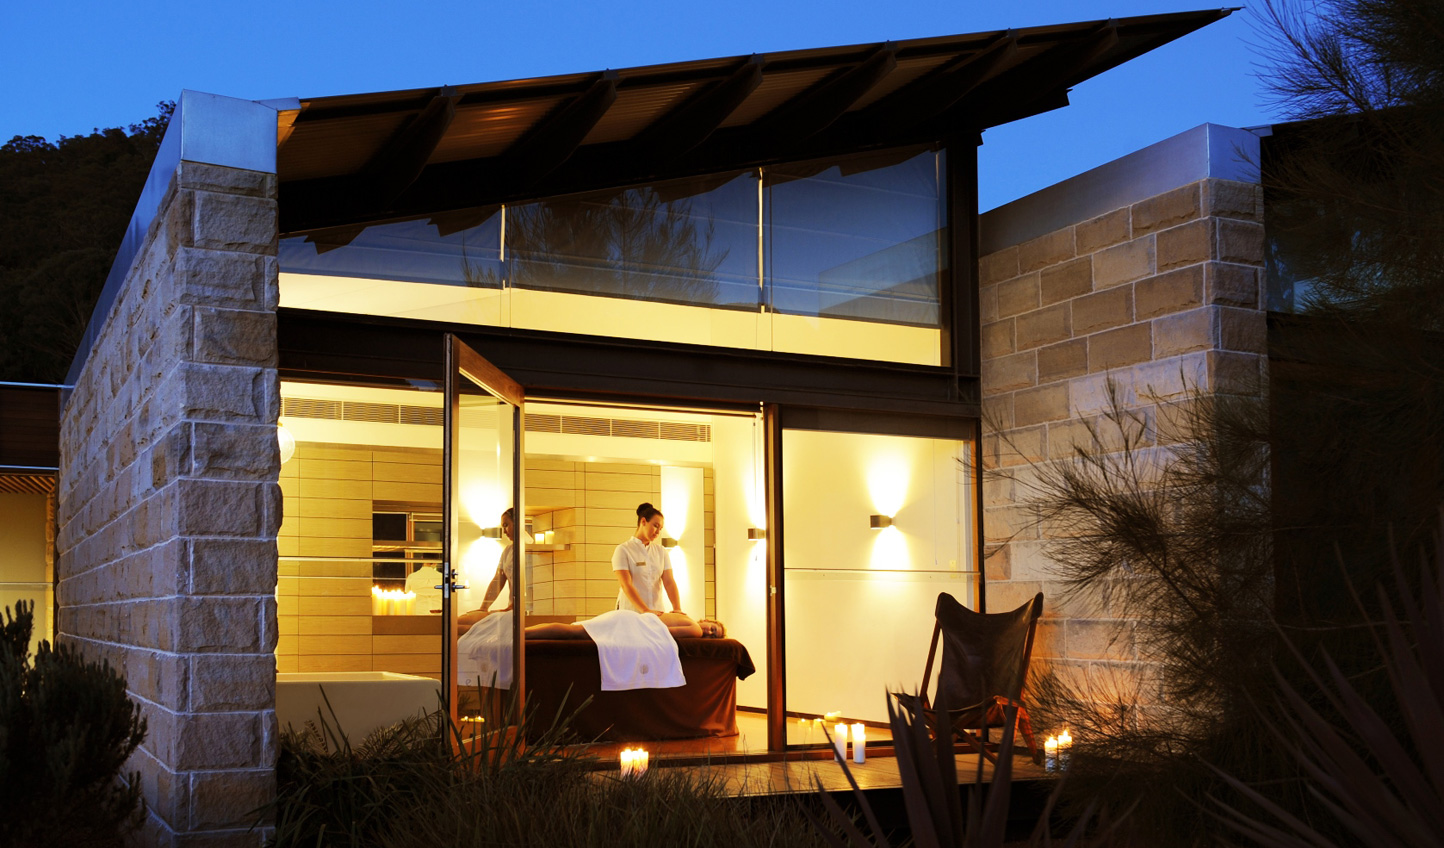 After a day exploring your surroundings, soothe your muscles in the spa